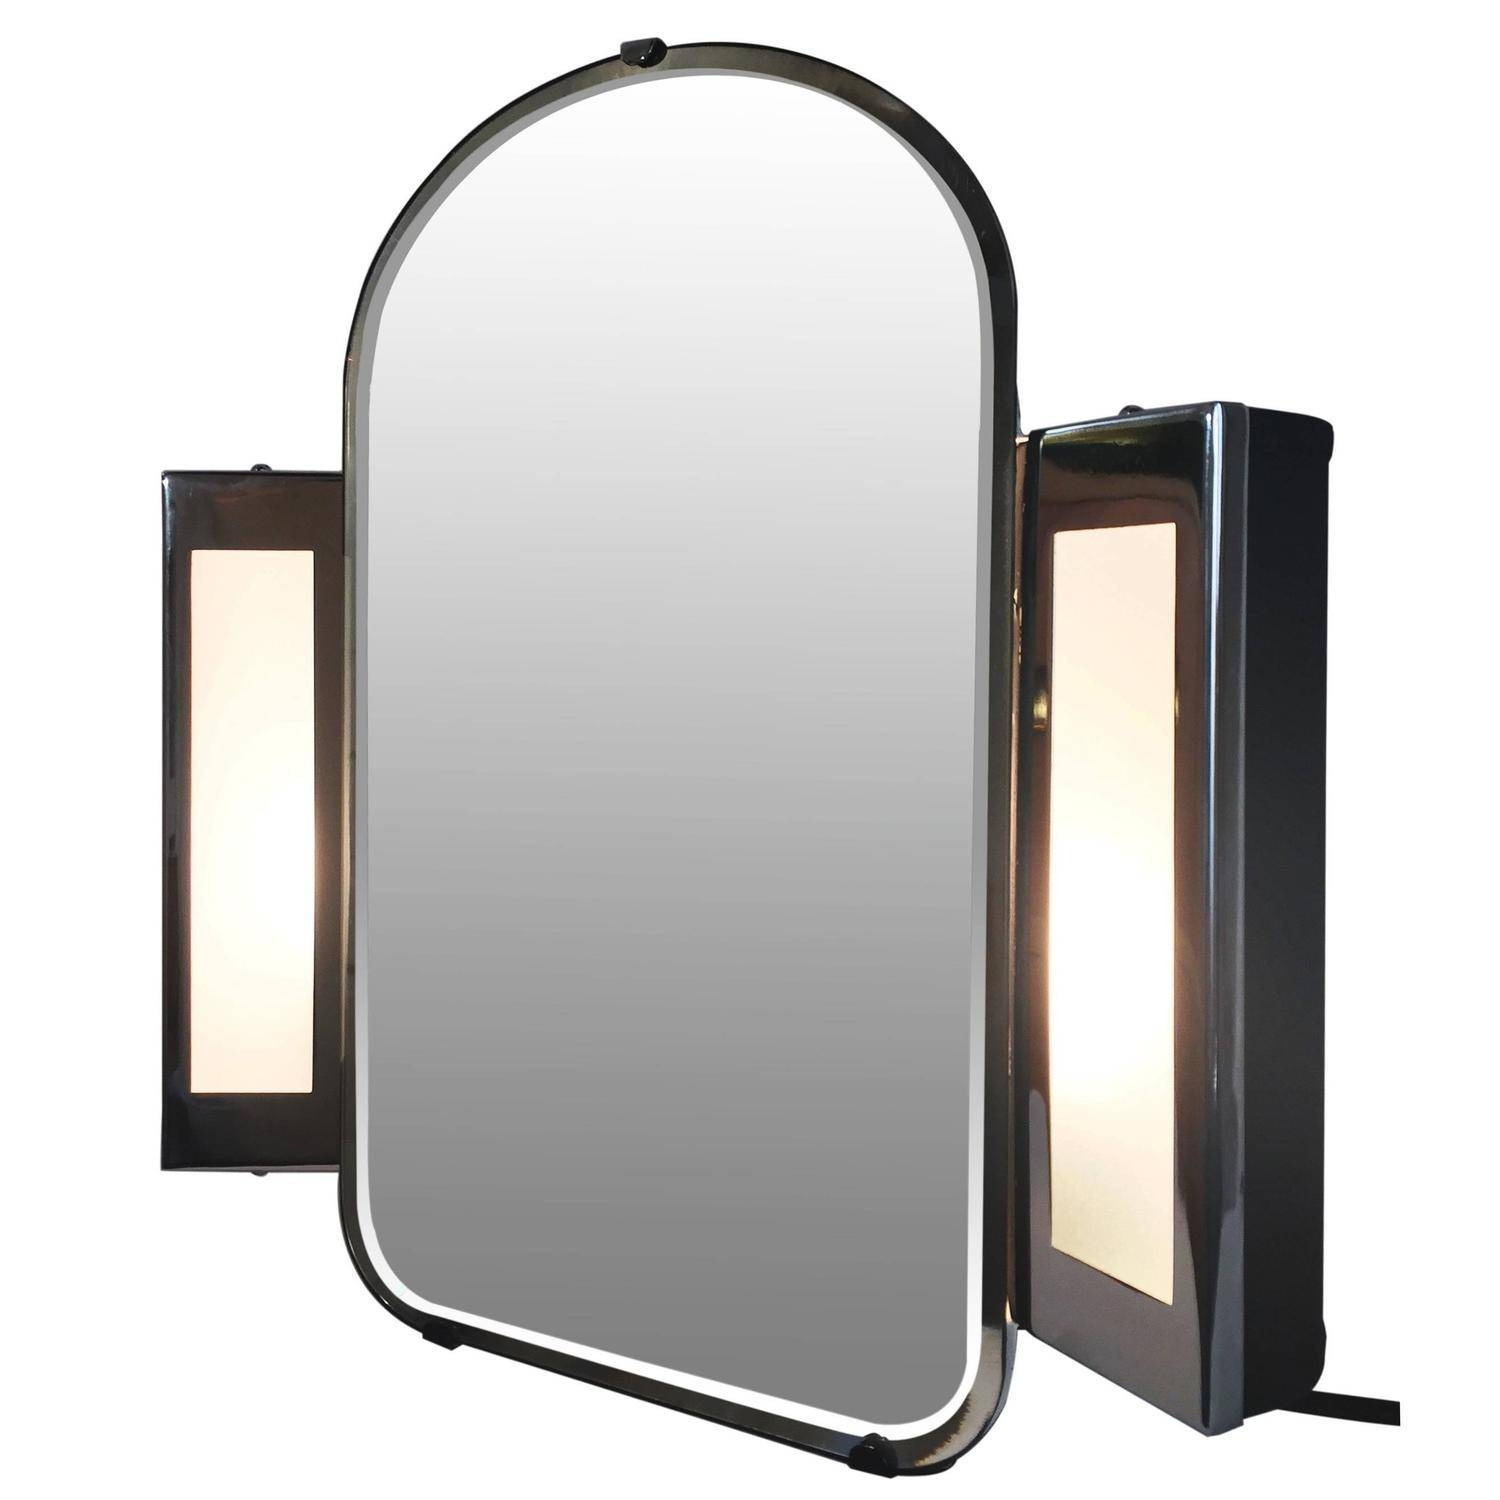 Art Deco Table Mirrors - 48 For Sale At 1Stdibs regarding Art Deco Dressing Table Mirrors (Image 13 of 15)